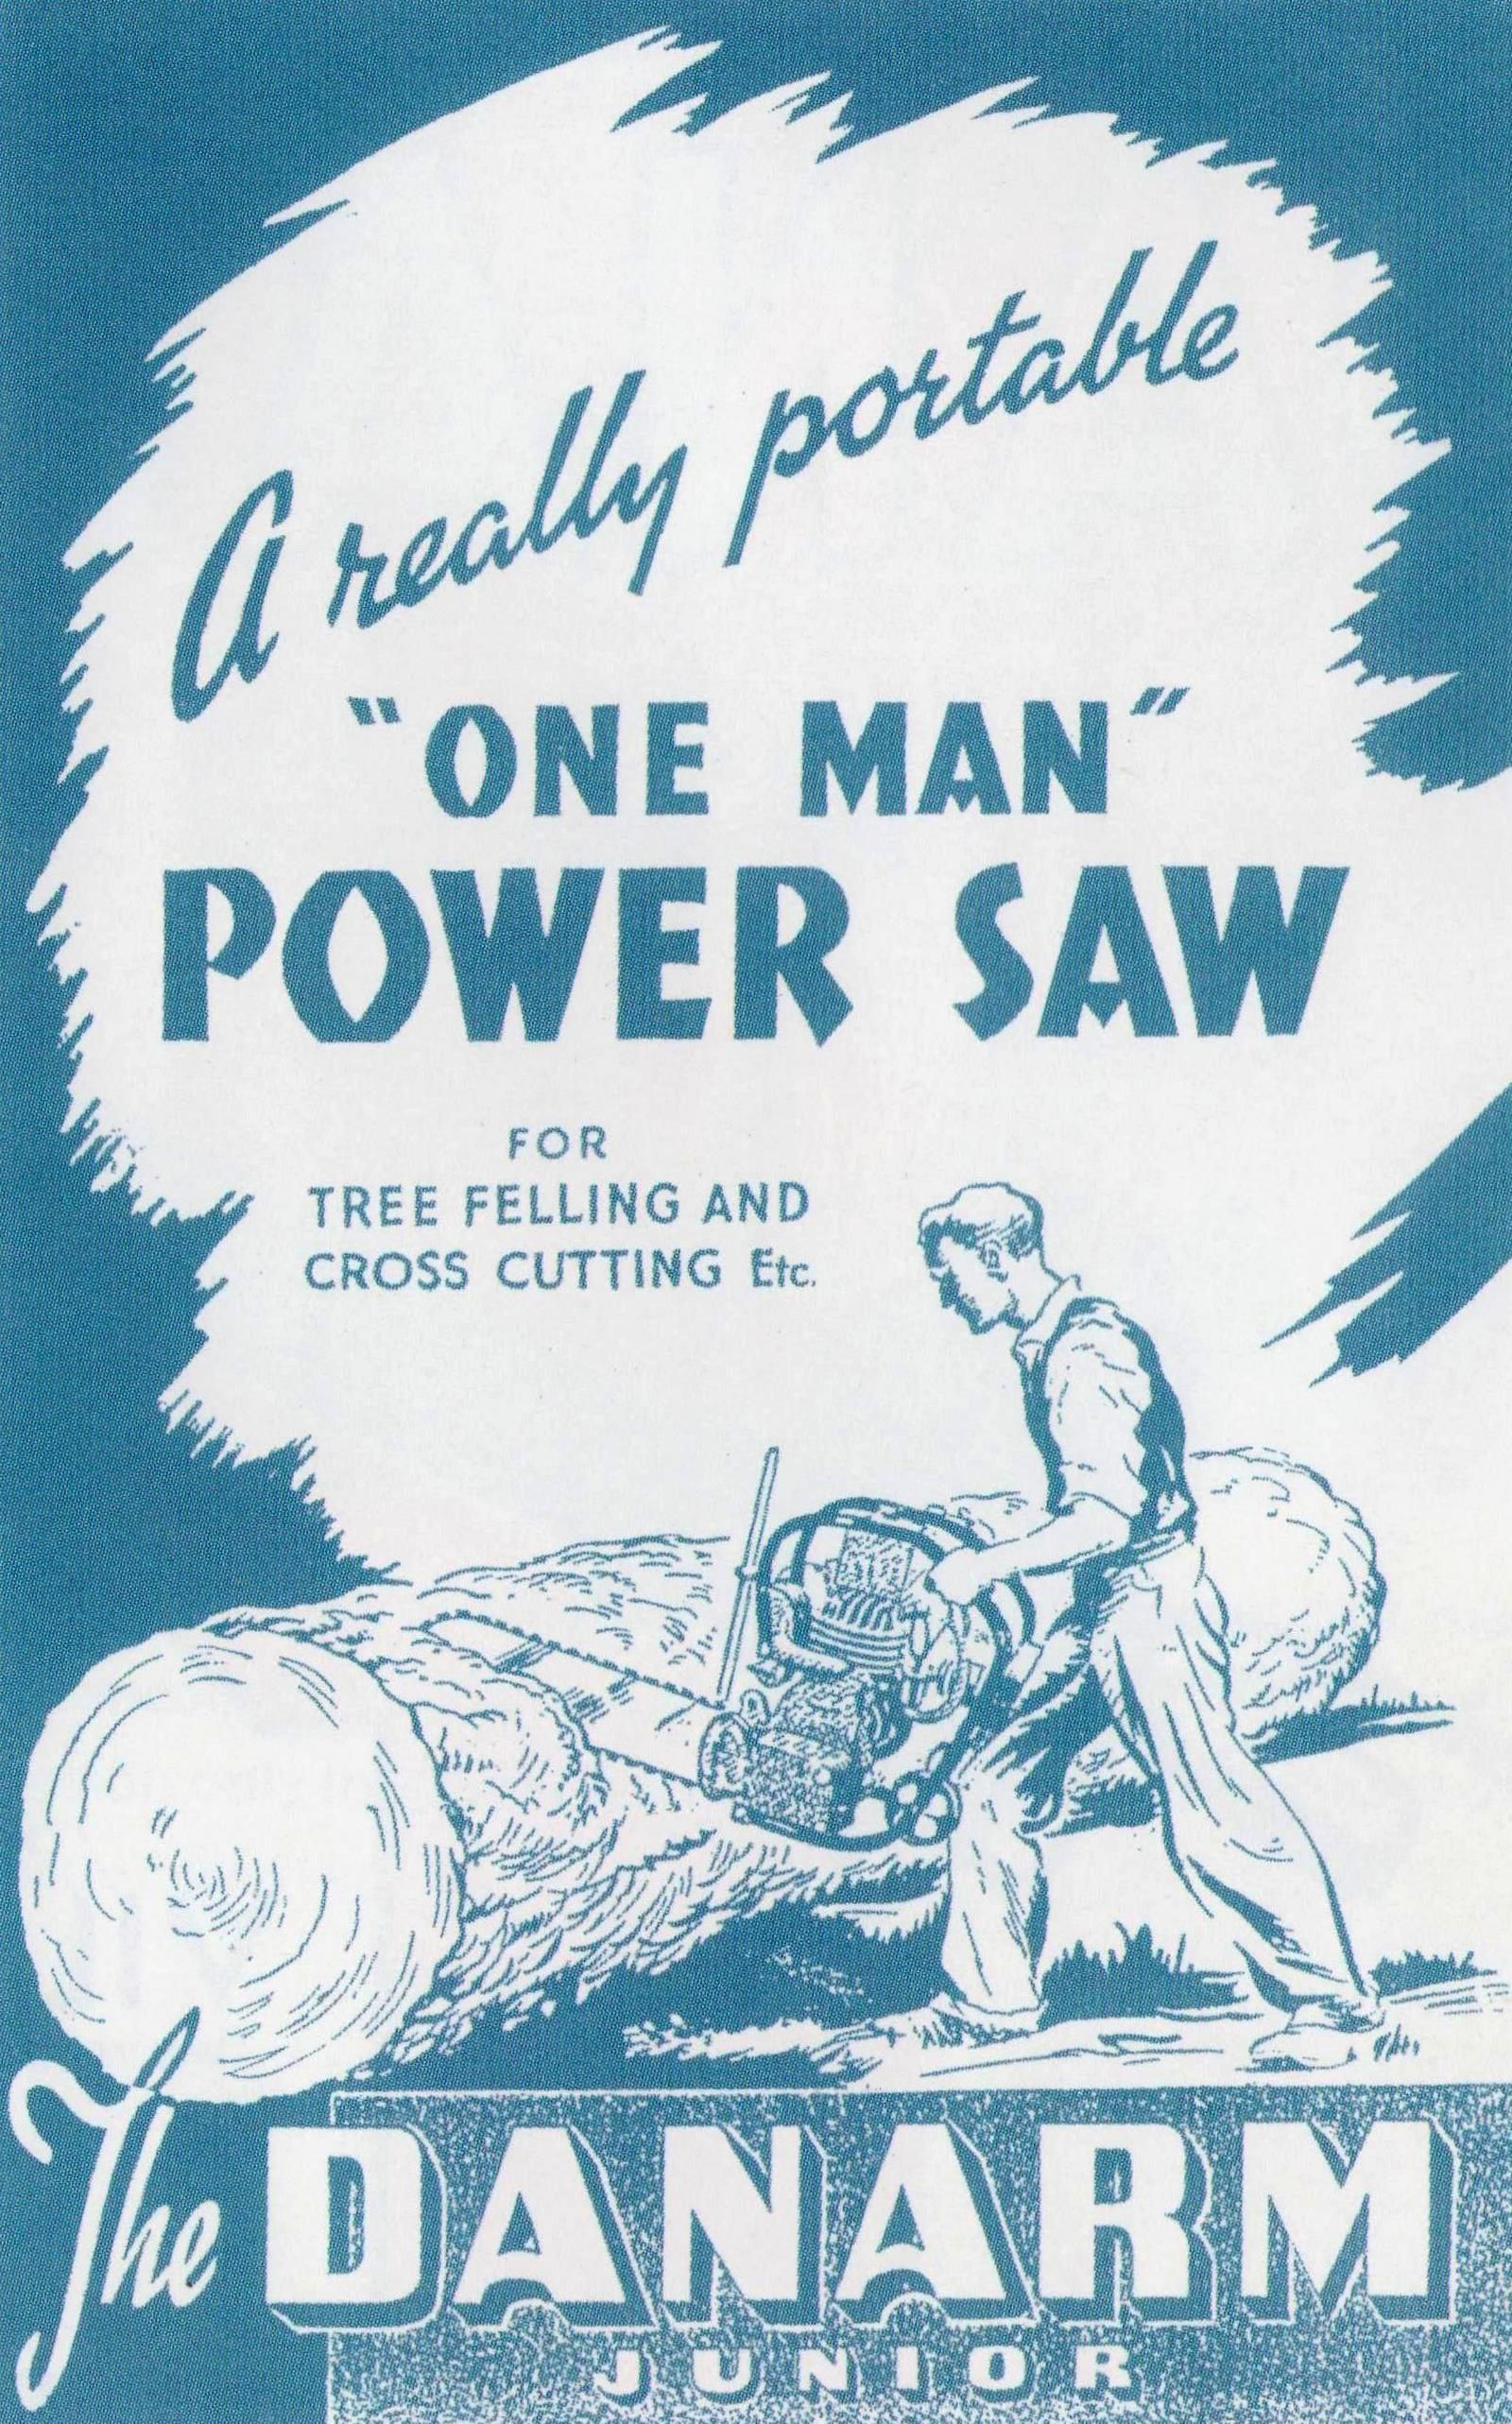 A Really Portable One Man Power Saw